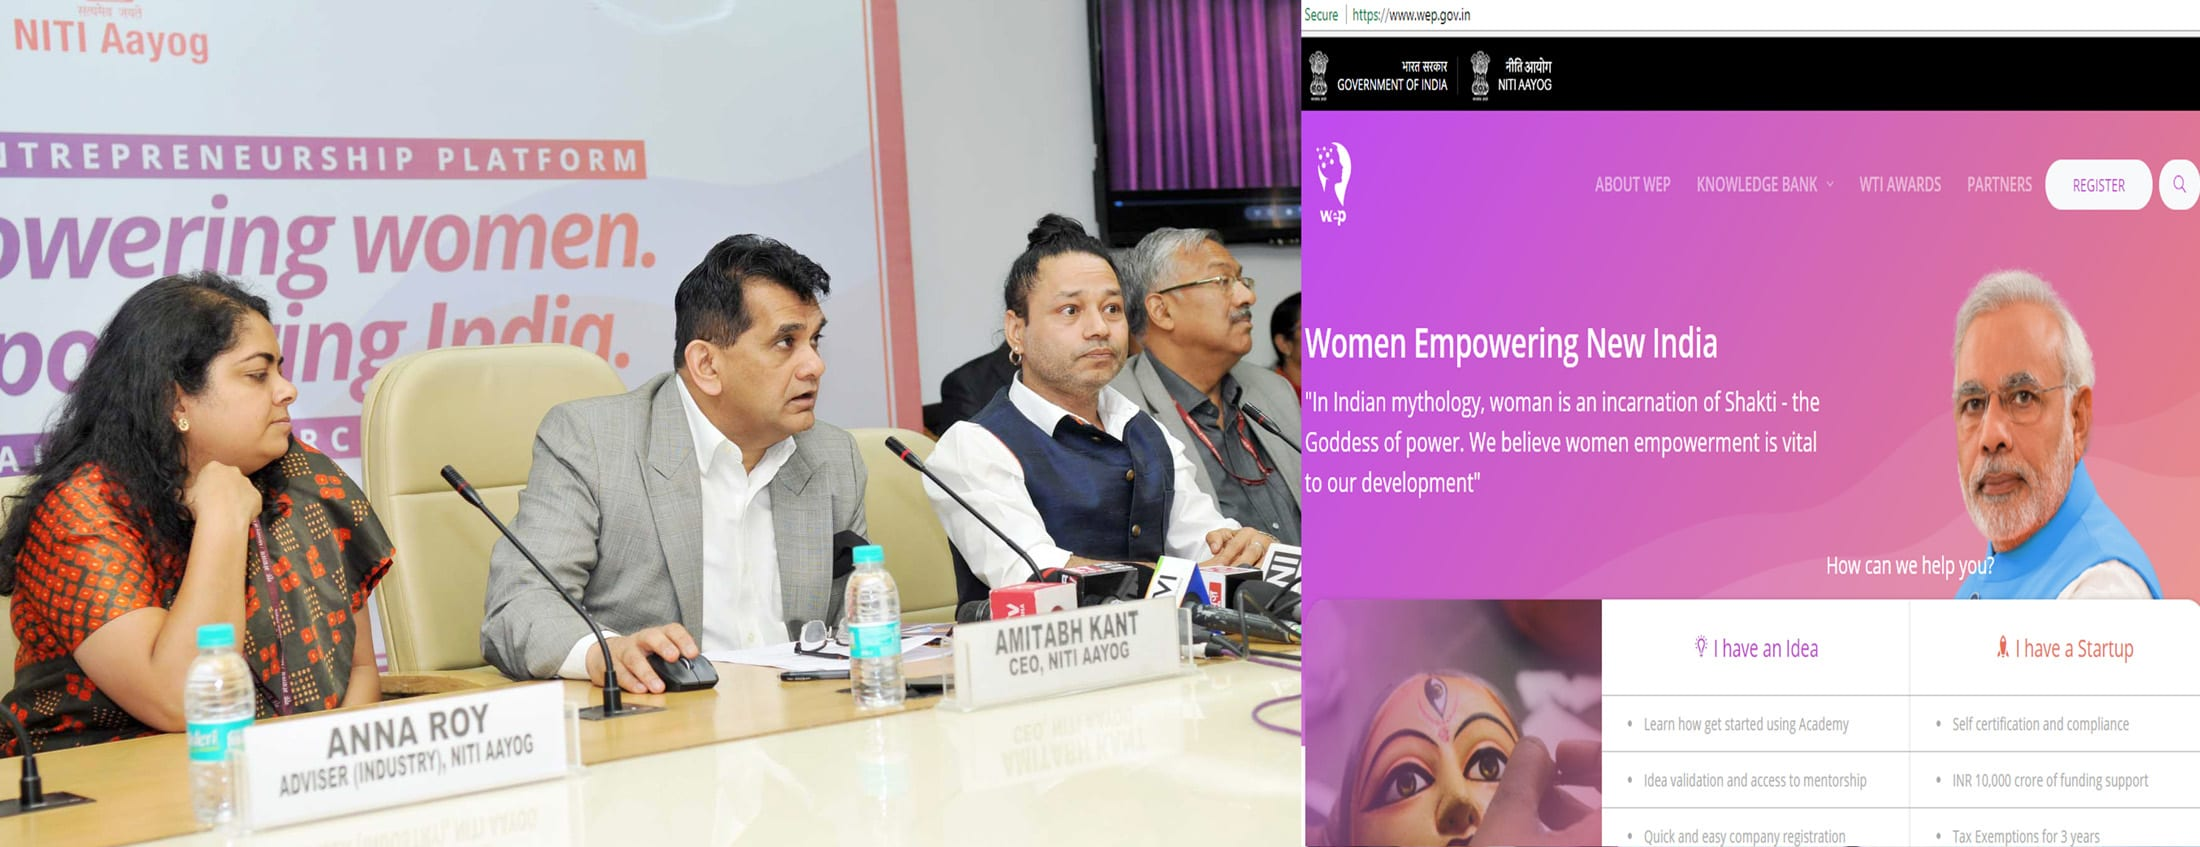 NITI Aayog launches Women Entrepreneurship Platform on International Women's Day